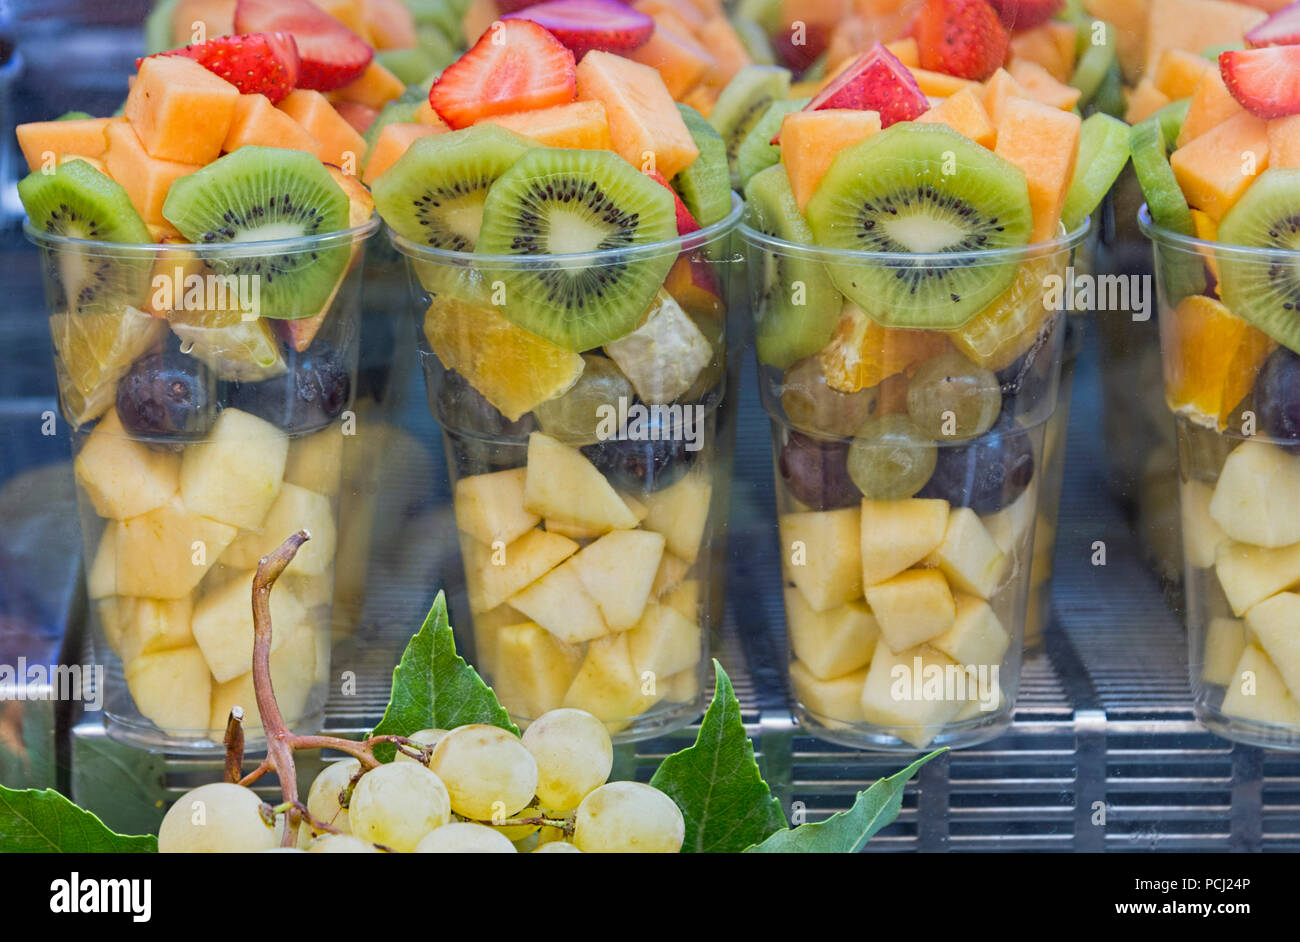 Fruit salad being sold in plastic cups Rome Italy - Stock Image